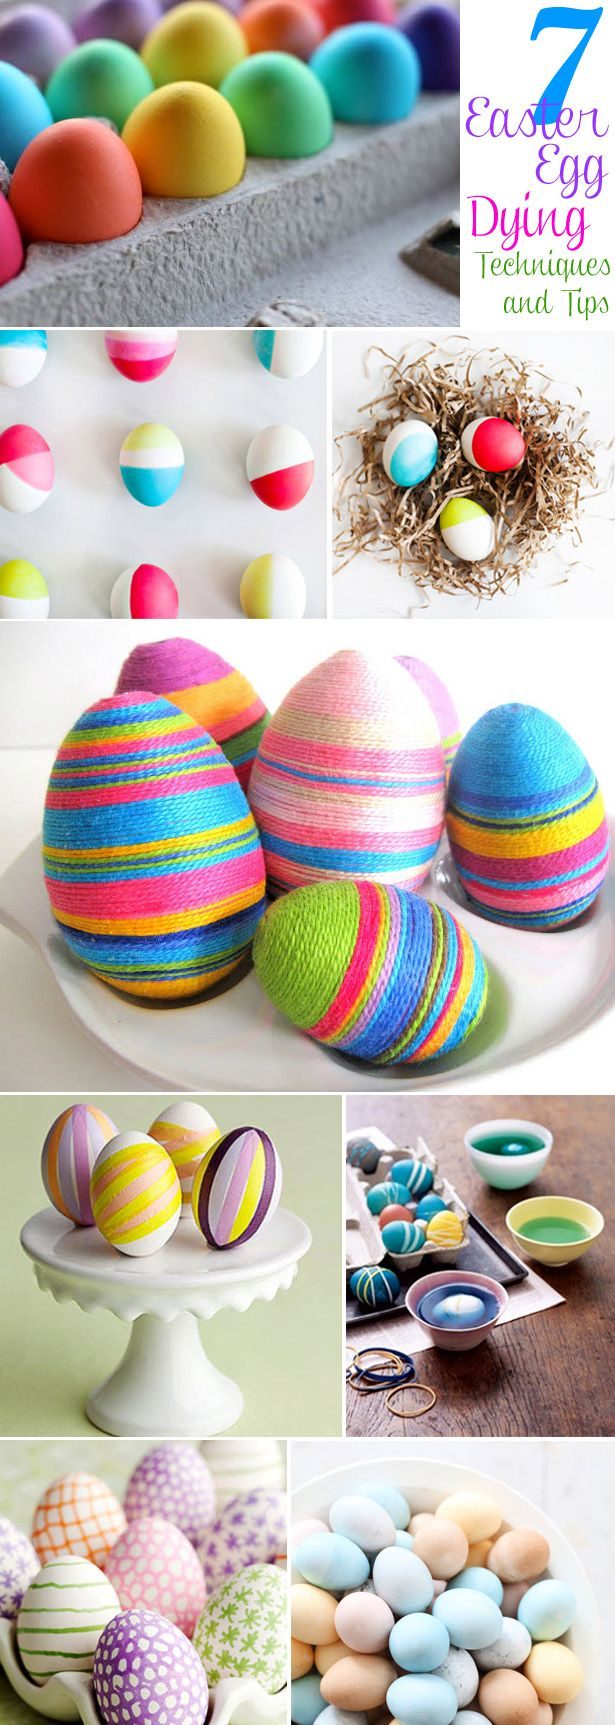 7 Easter egg dying techniques